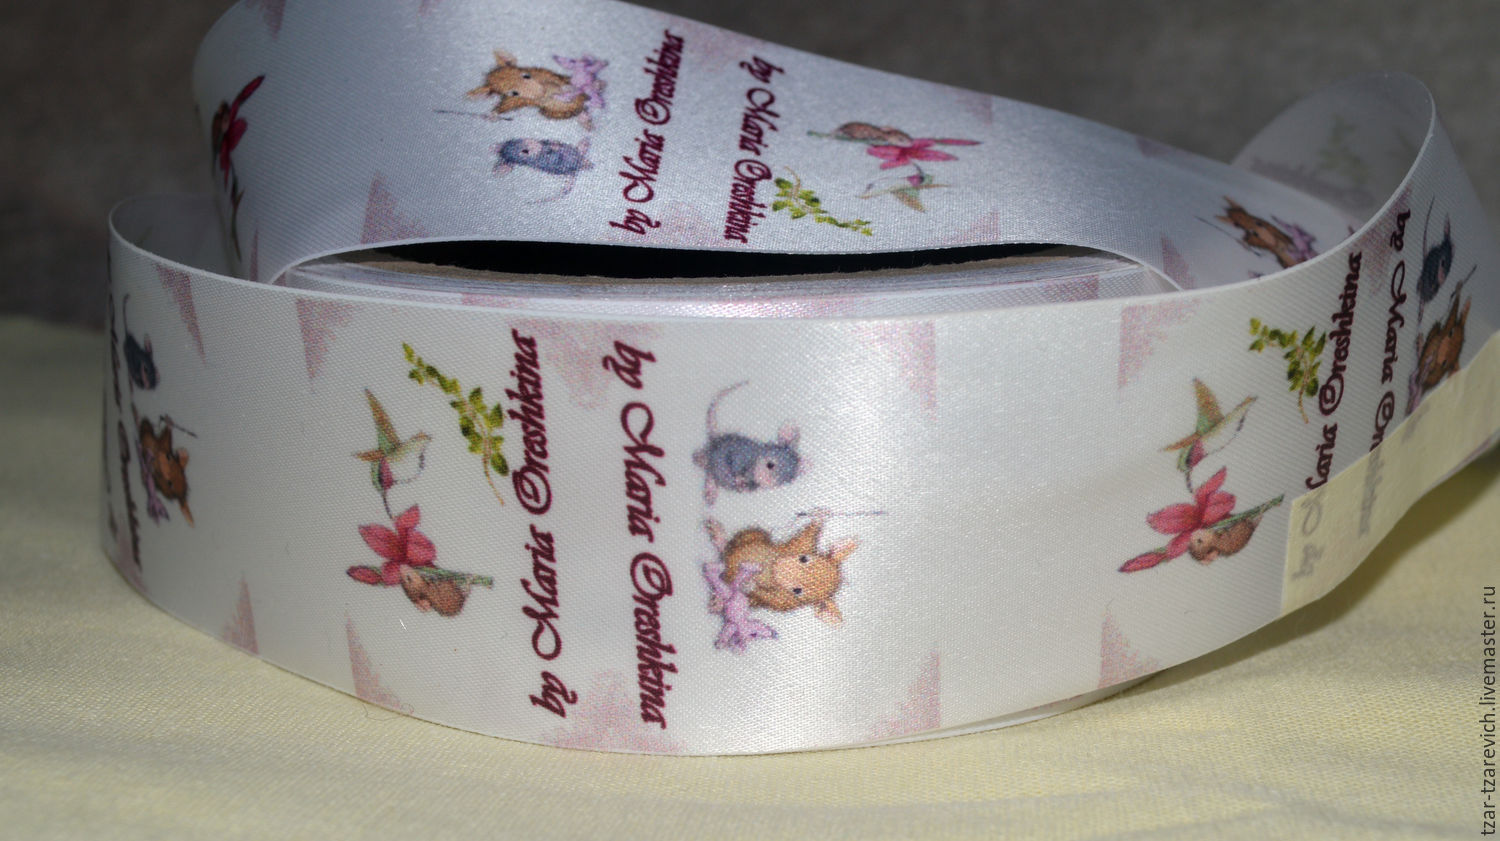 labels with logo